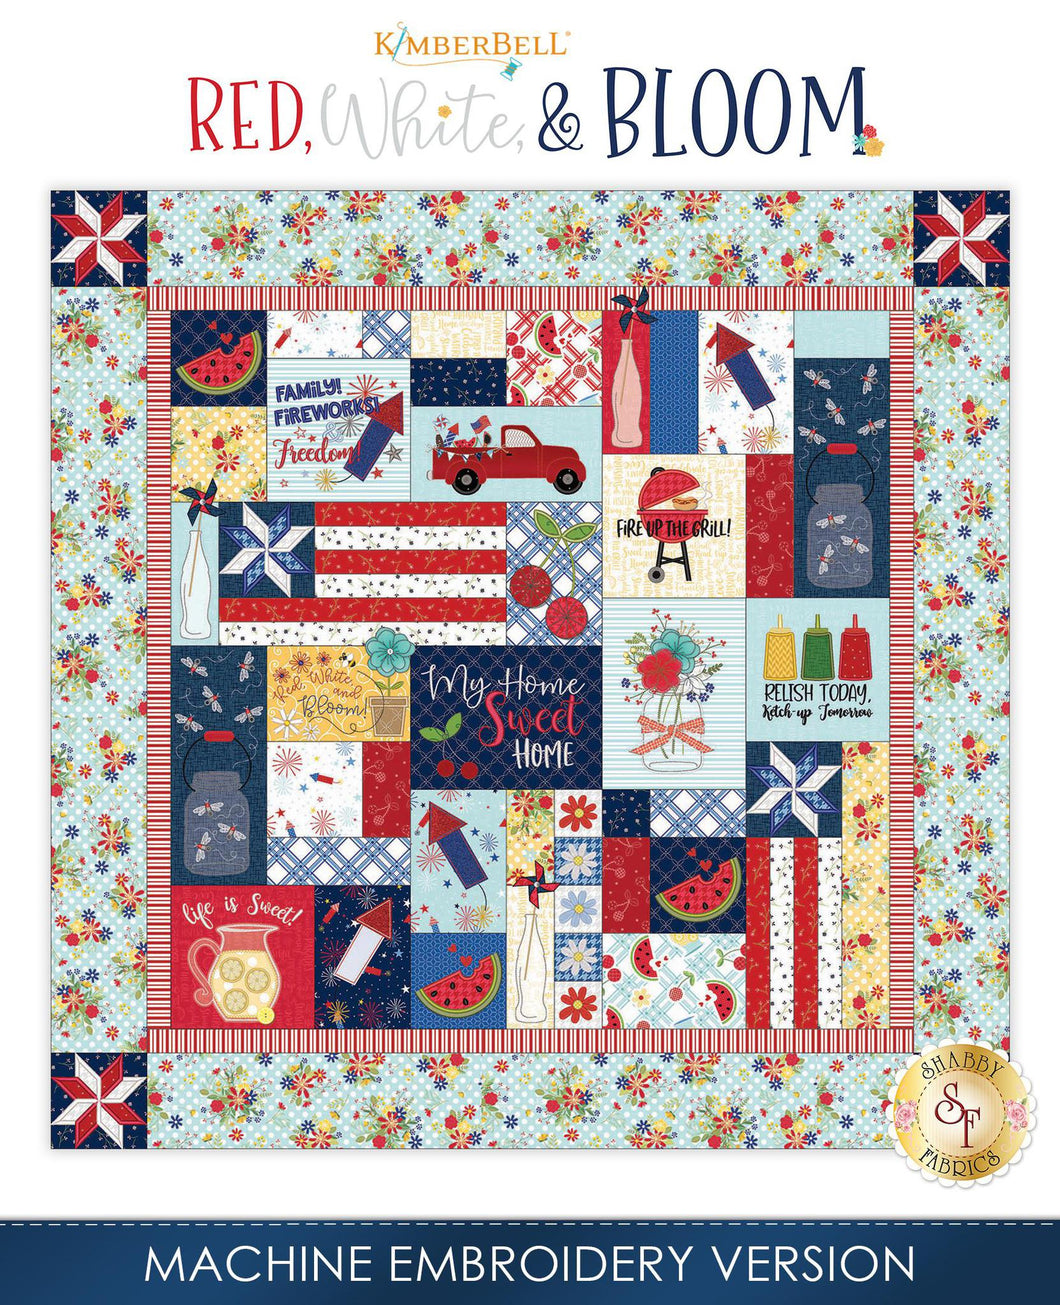 Kimberbell, Red White and Bloom - Machine Embroidery (KD809) - Myers Sewing